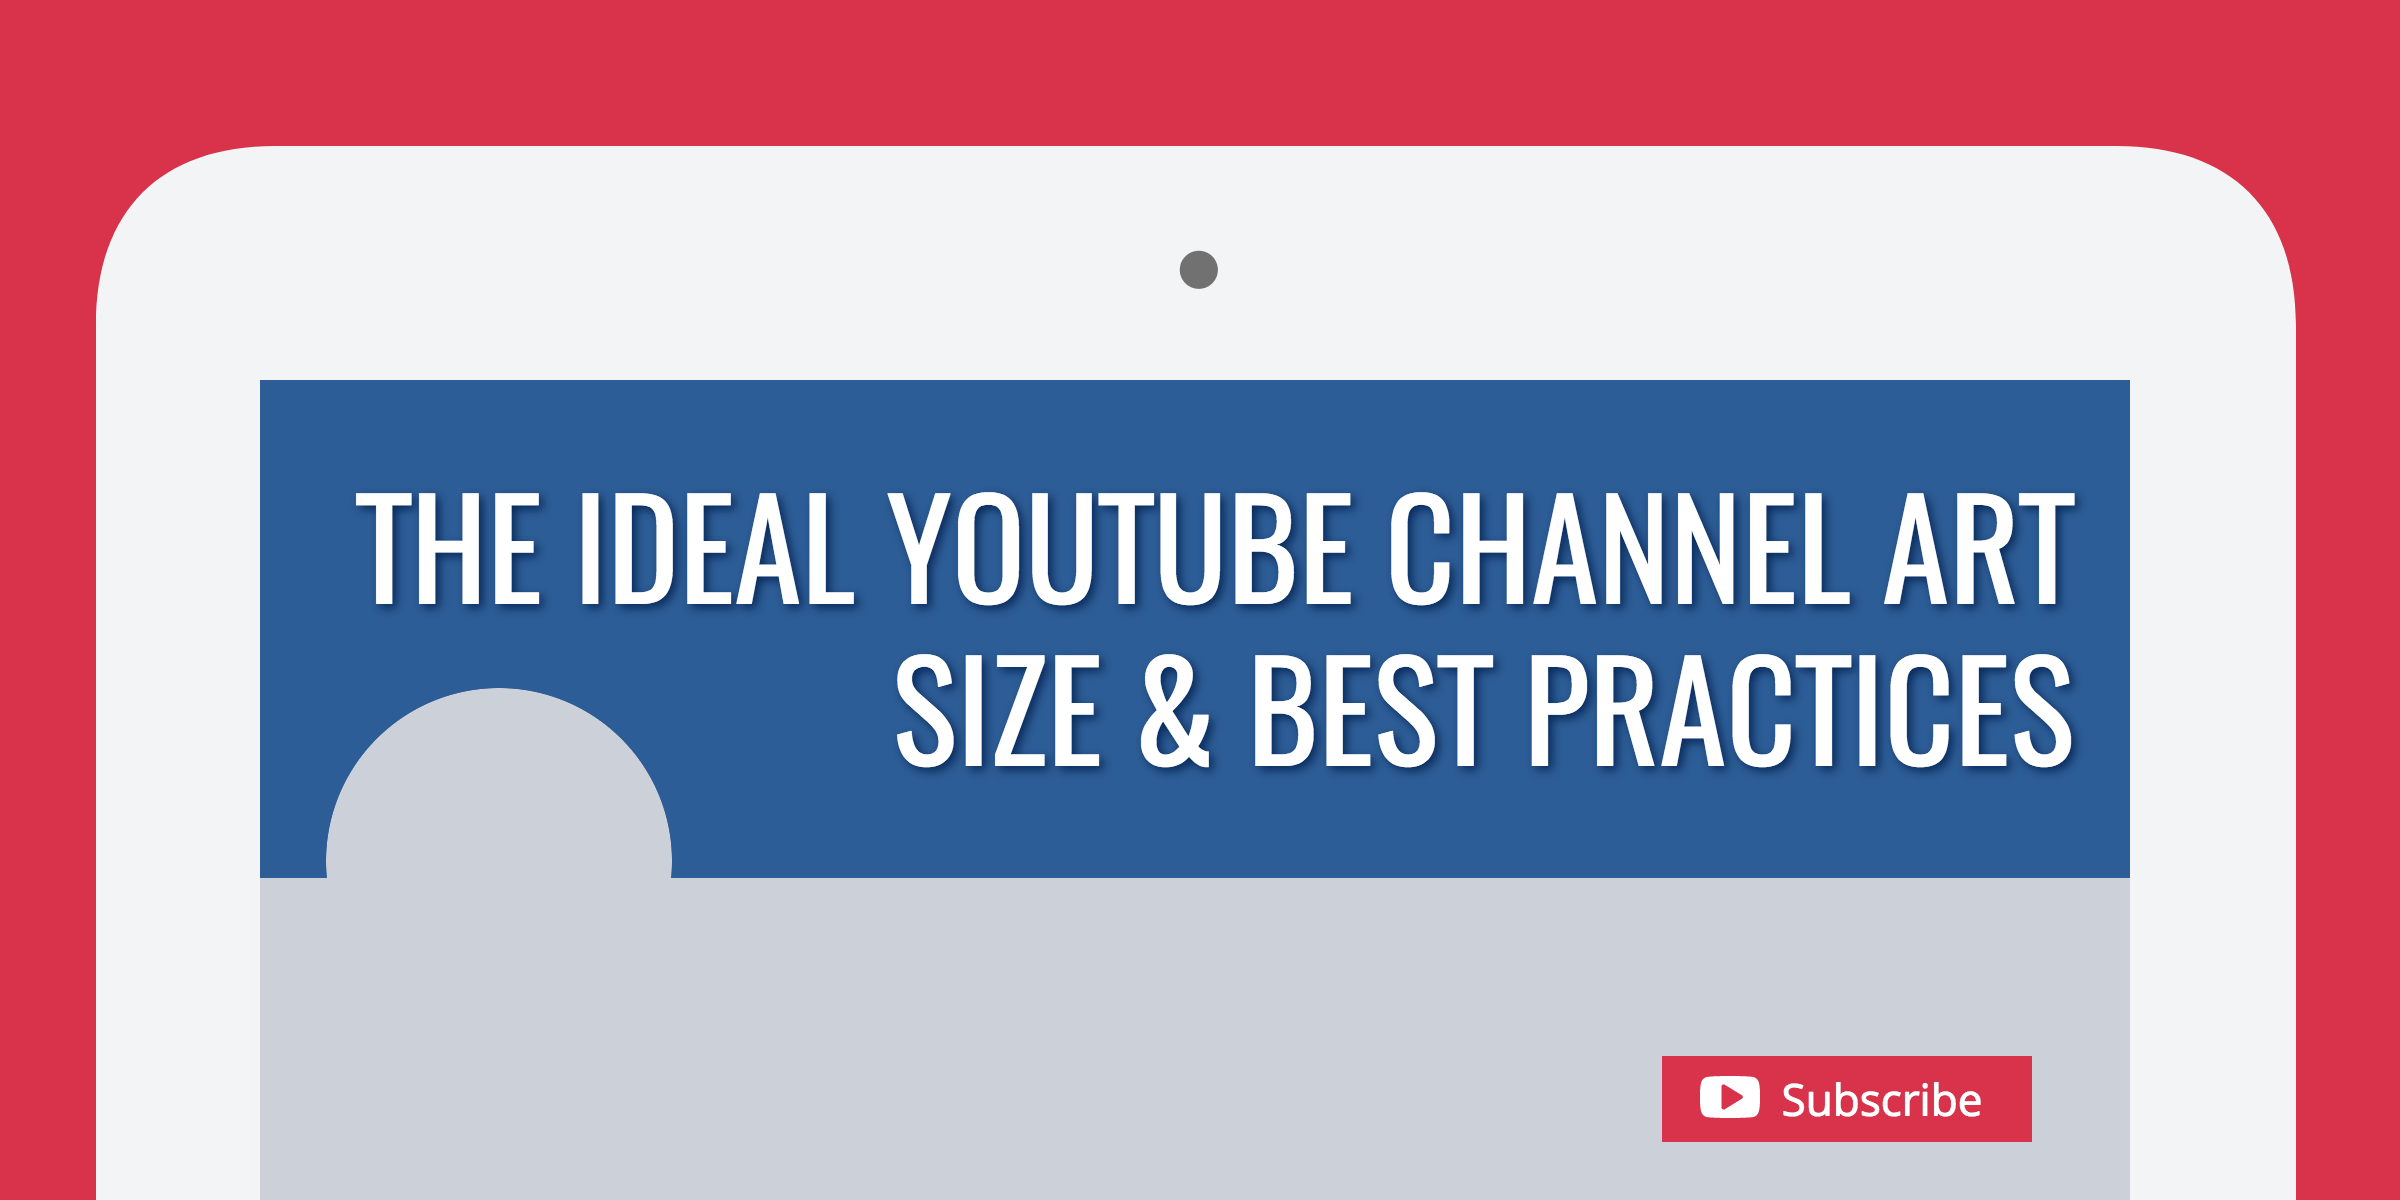 b4496387 The Ideal YouTube Channel Art Size & Best Practices